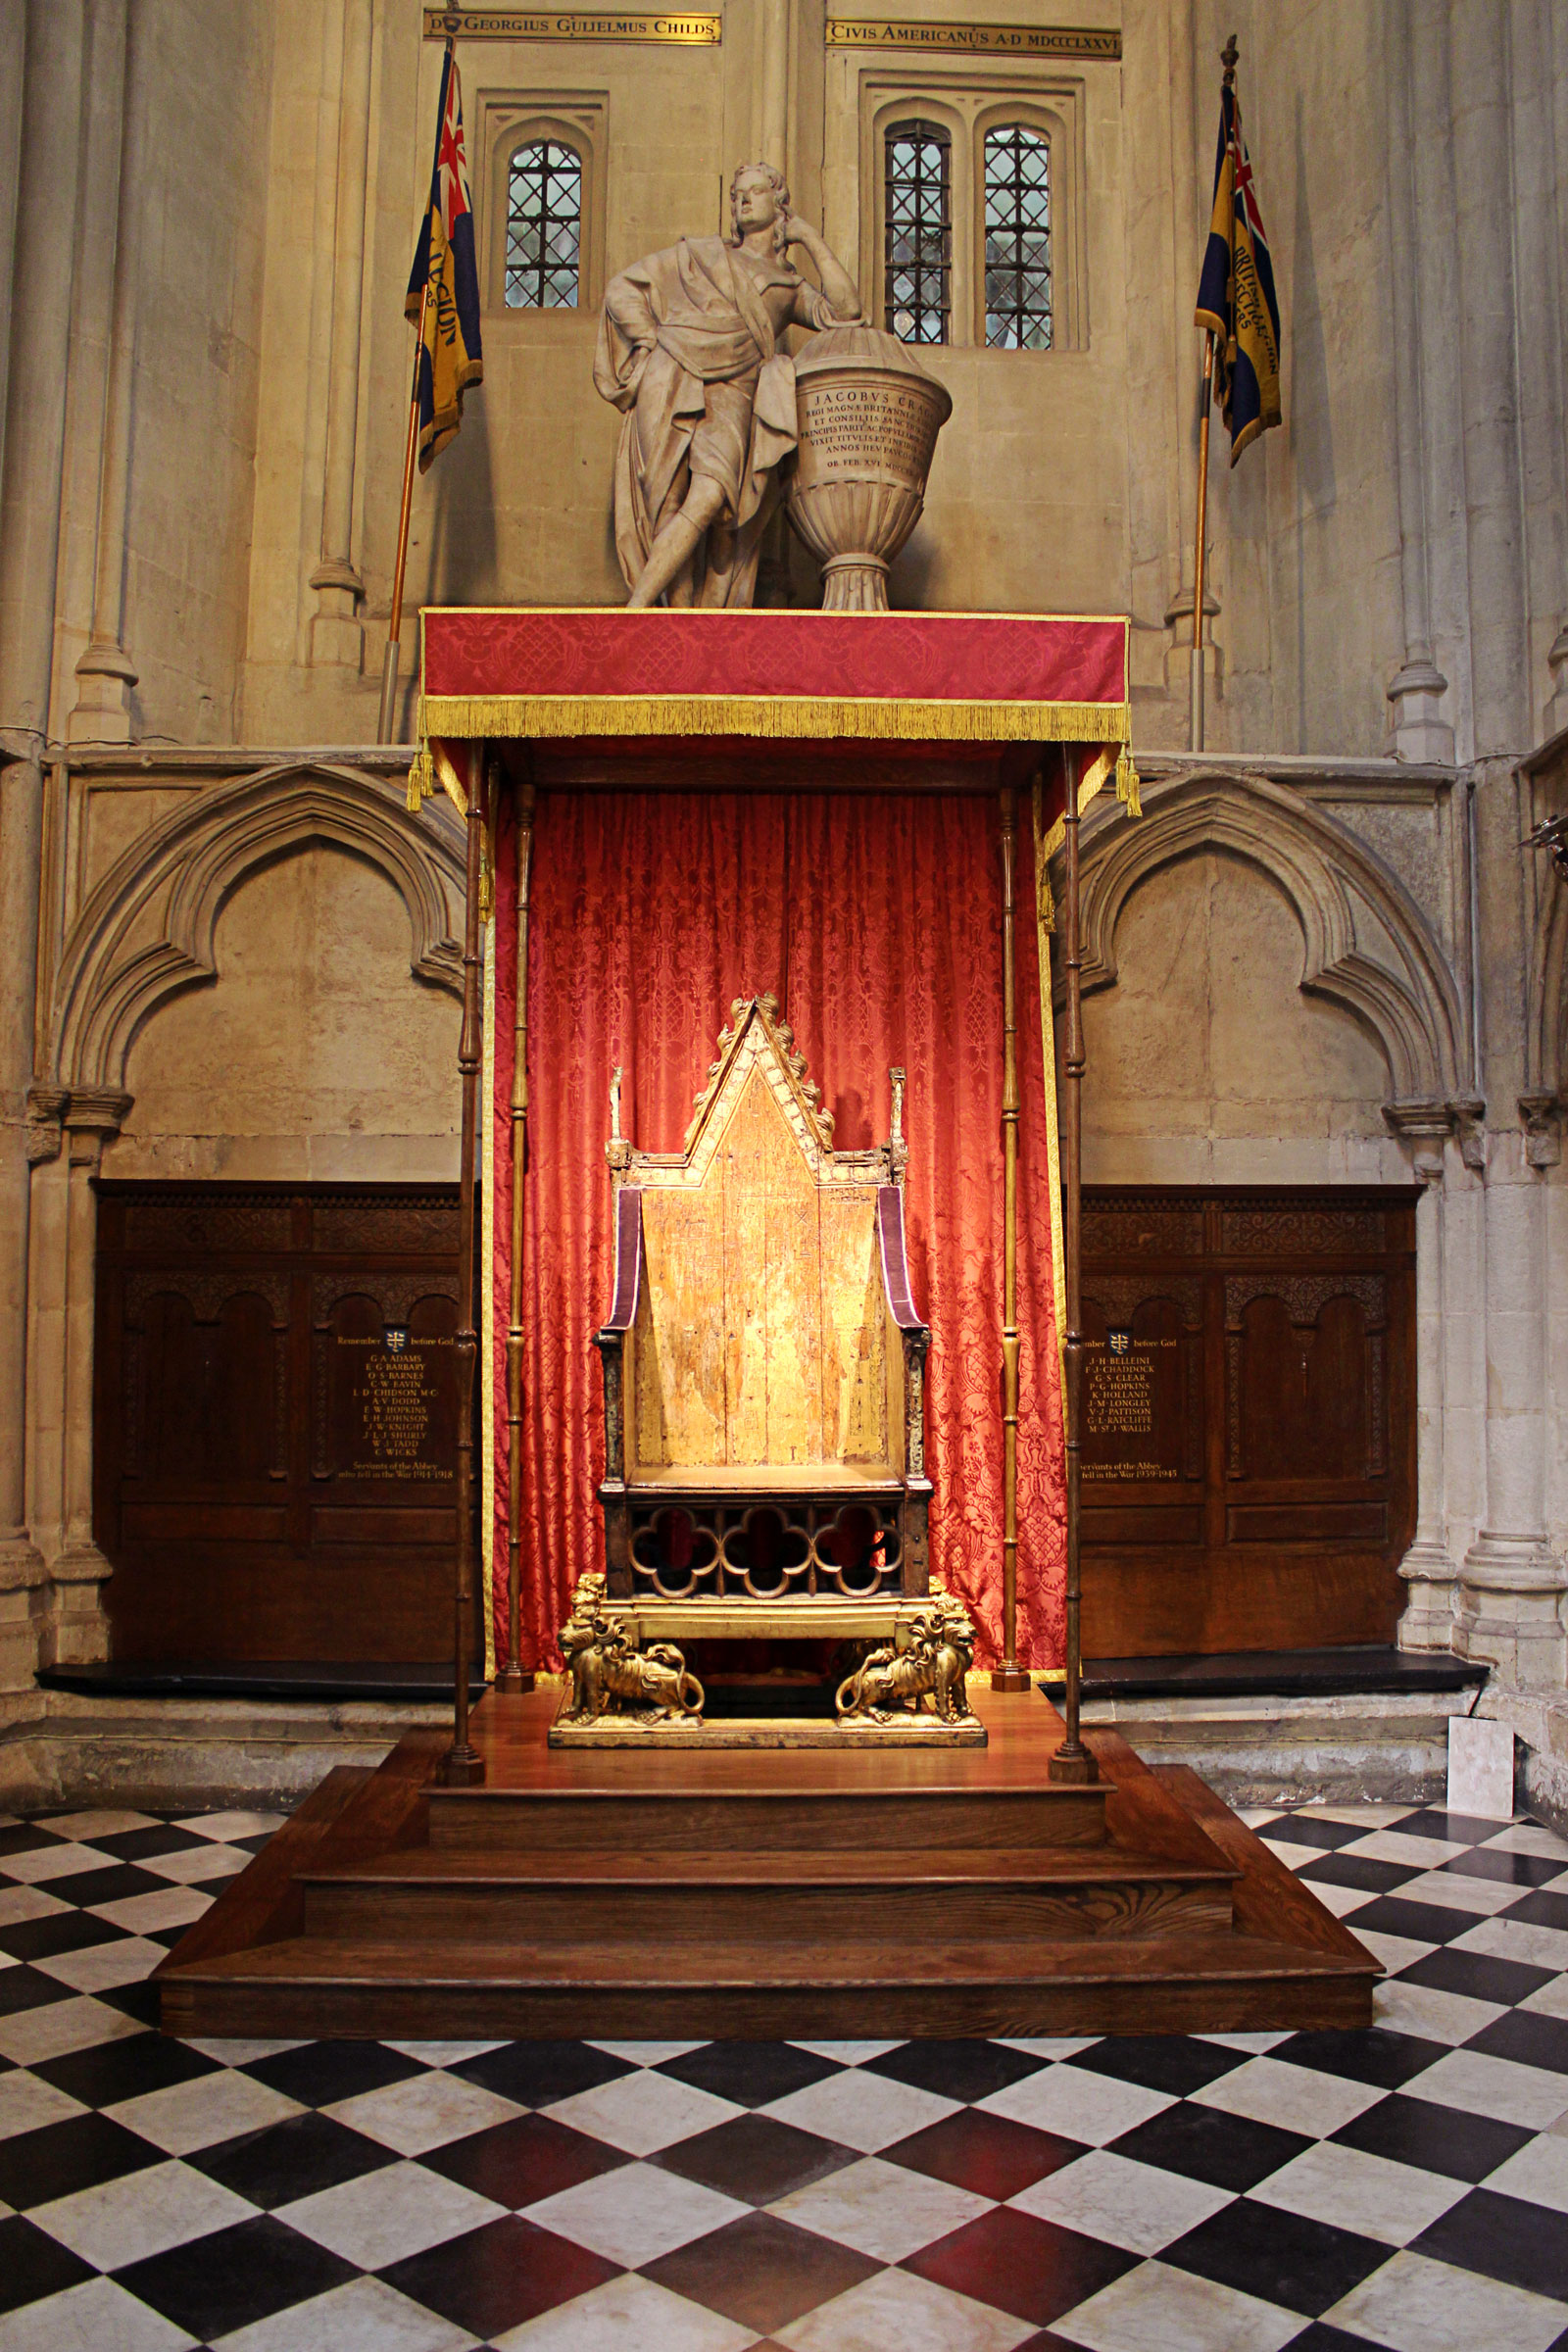 The Coronation Chair in St George's Chapel